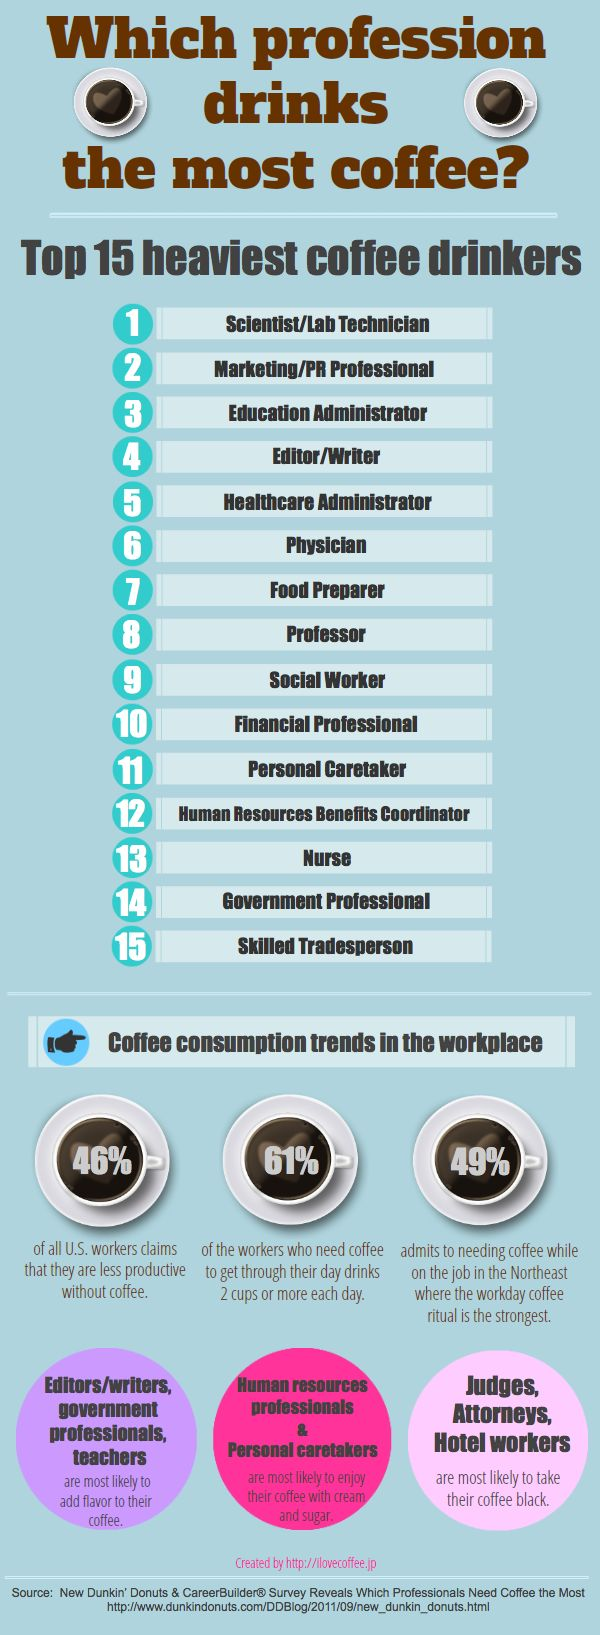 Which Profession Has The Heaviest Coffee Drinkers?